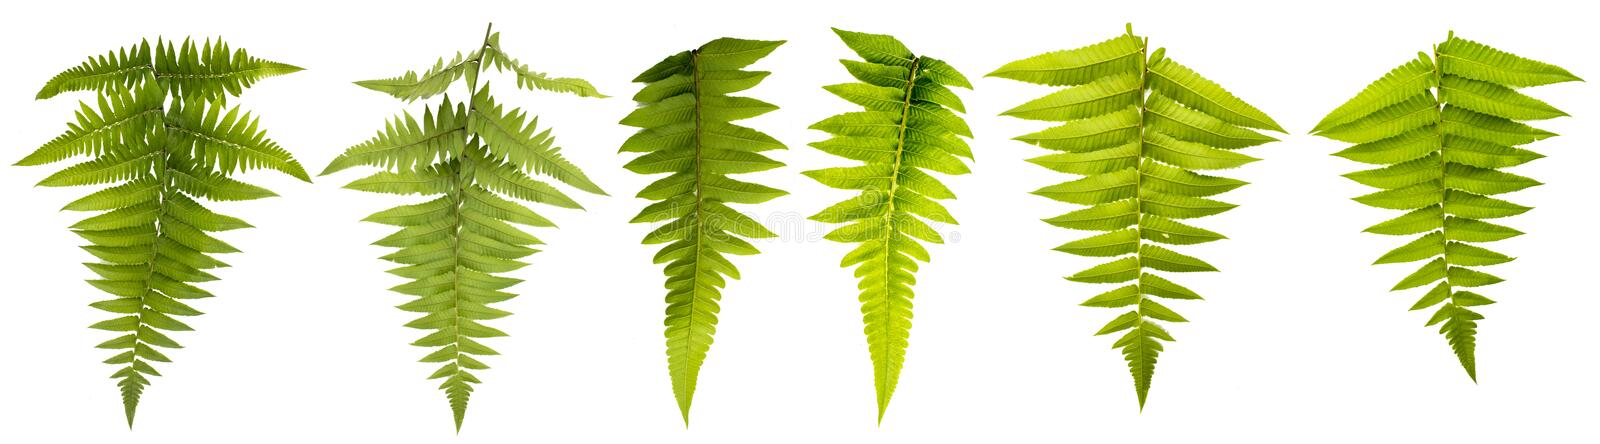 Leaf isolated on white background with clipping path. Leaves use for brush and more decorative royalty free stock images